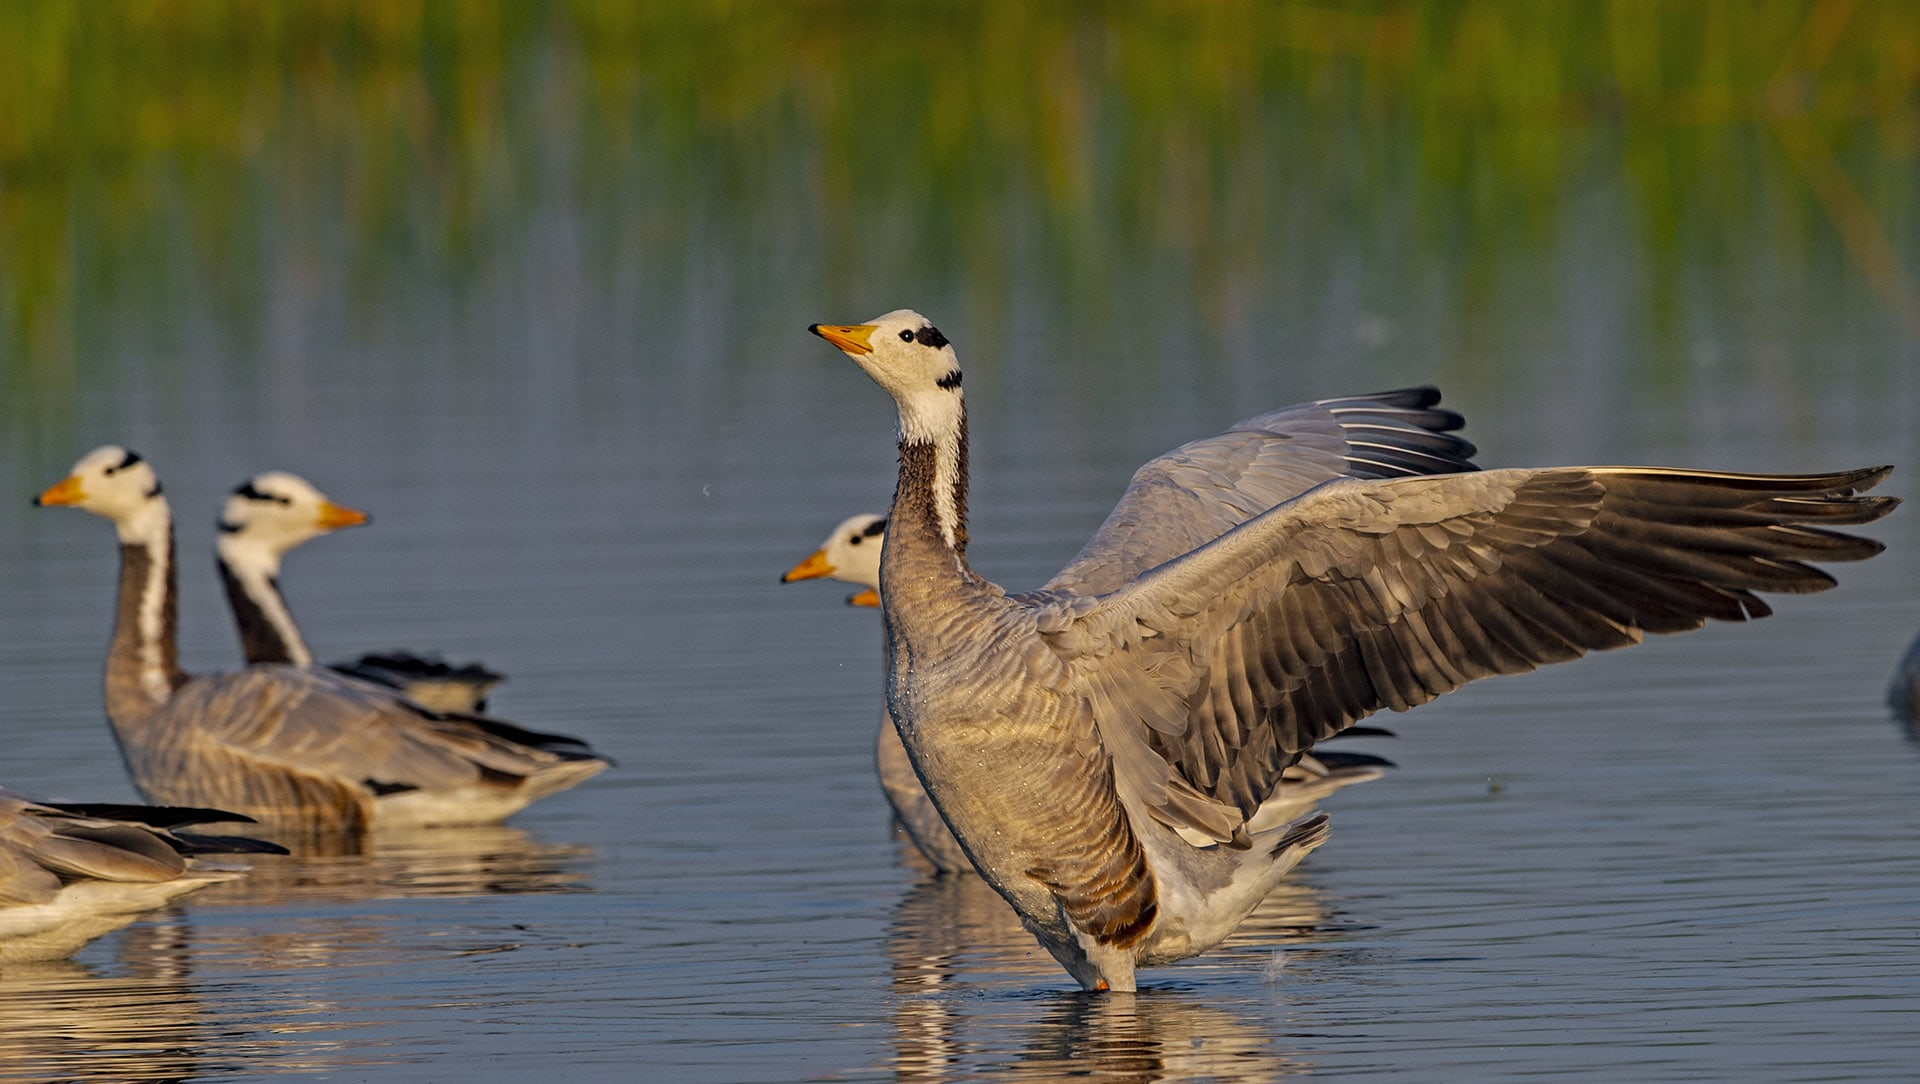 Why Rann When you can fly: The Bar-Headed Geese of Gujarat